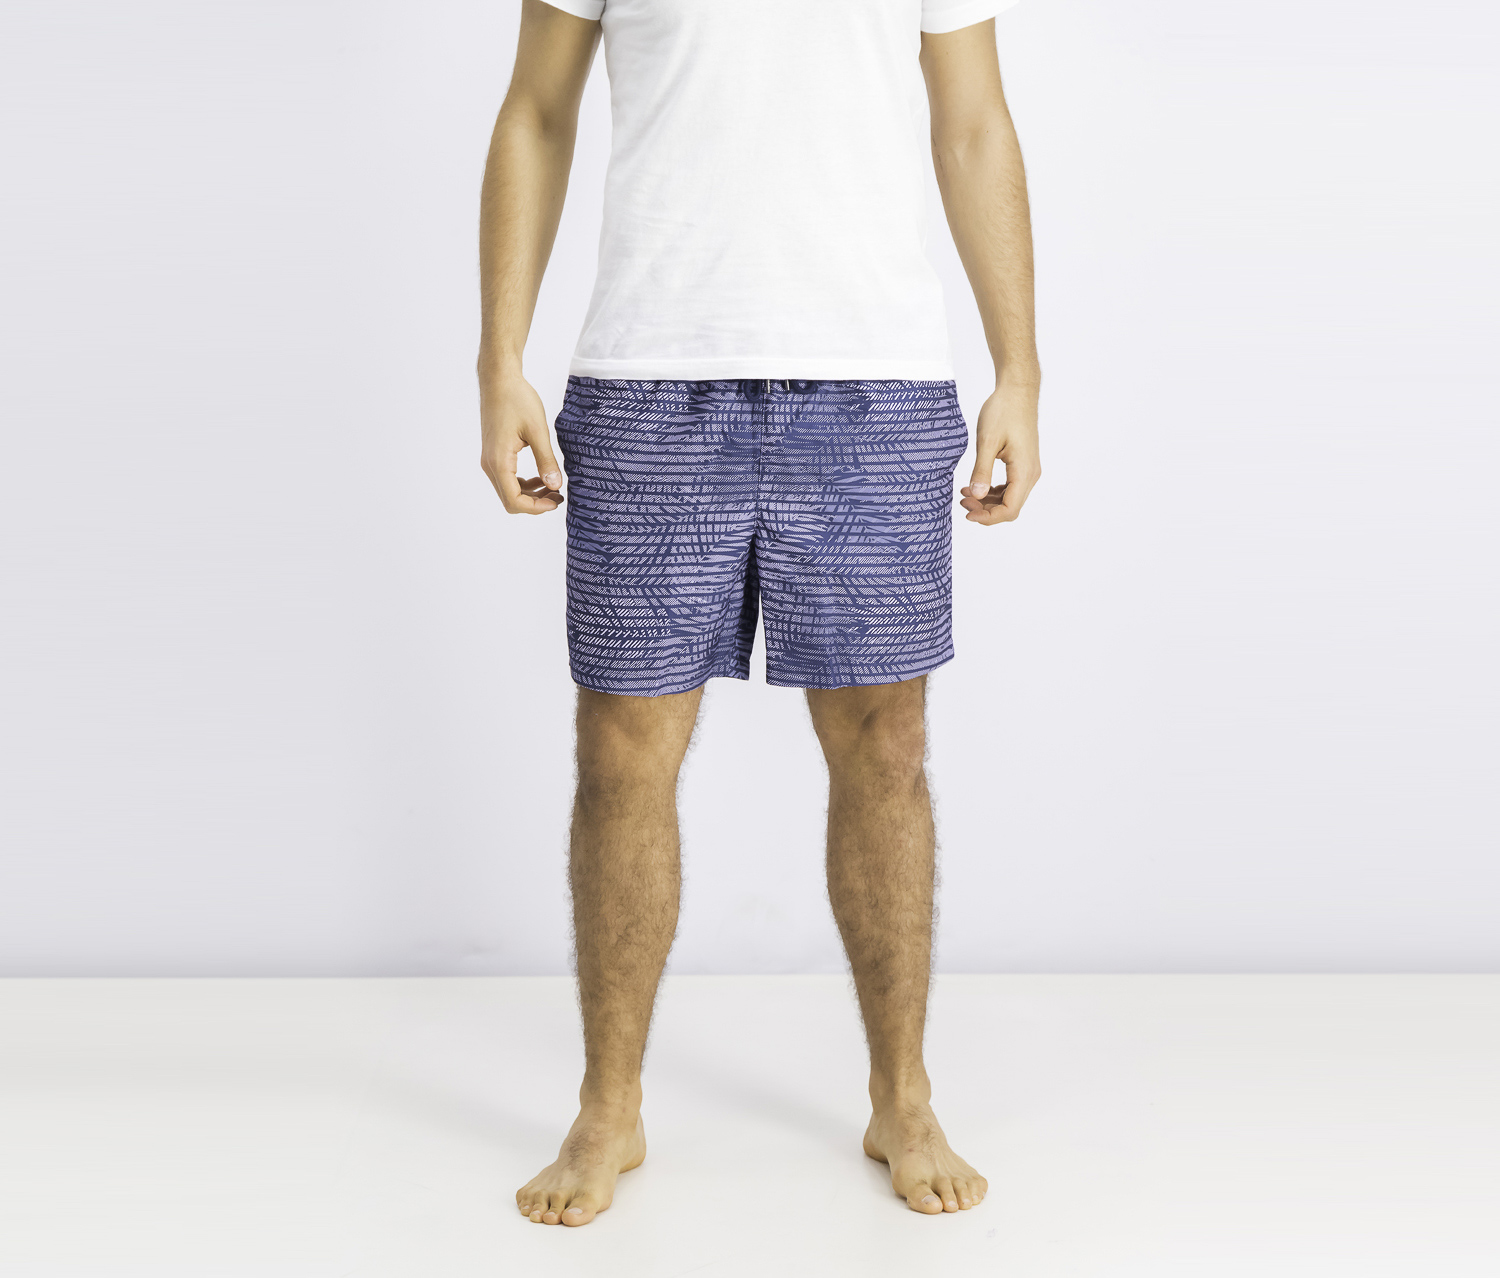 Men's Pinted Board Short, Lavender/Navy